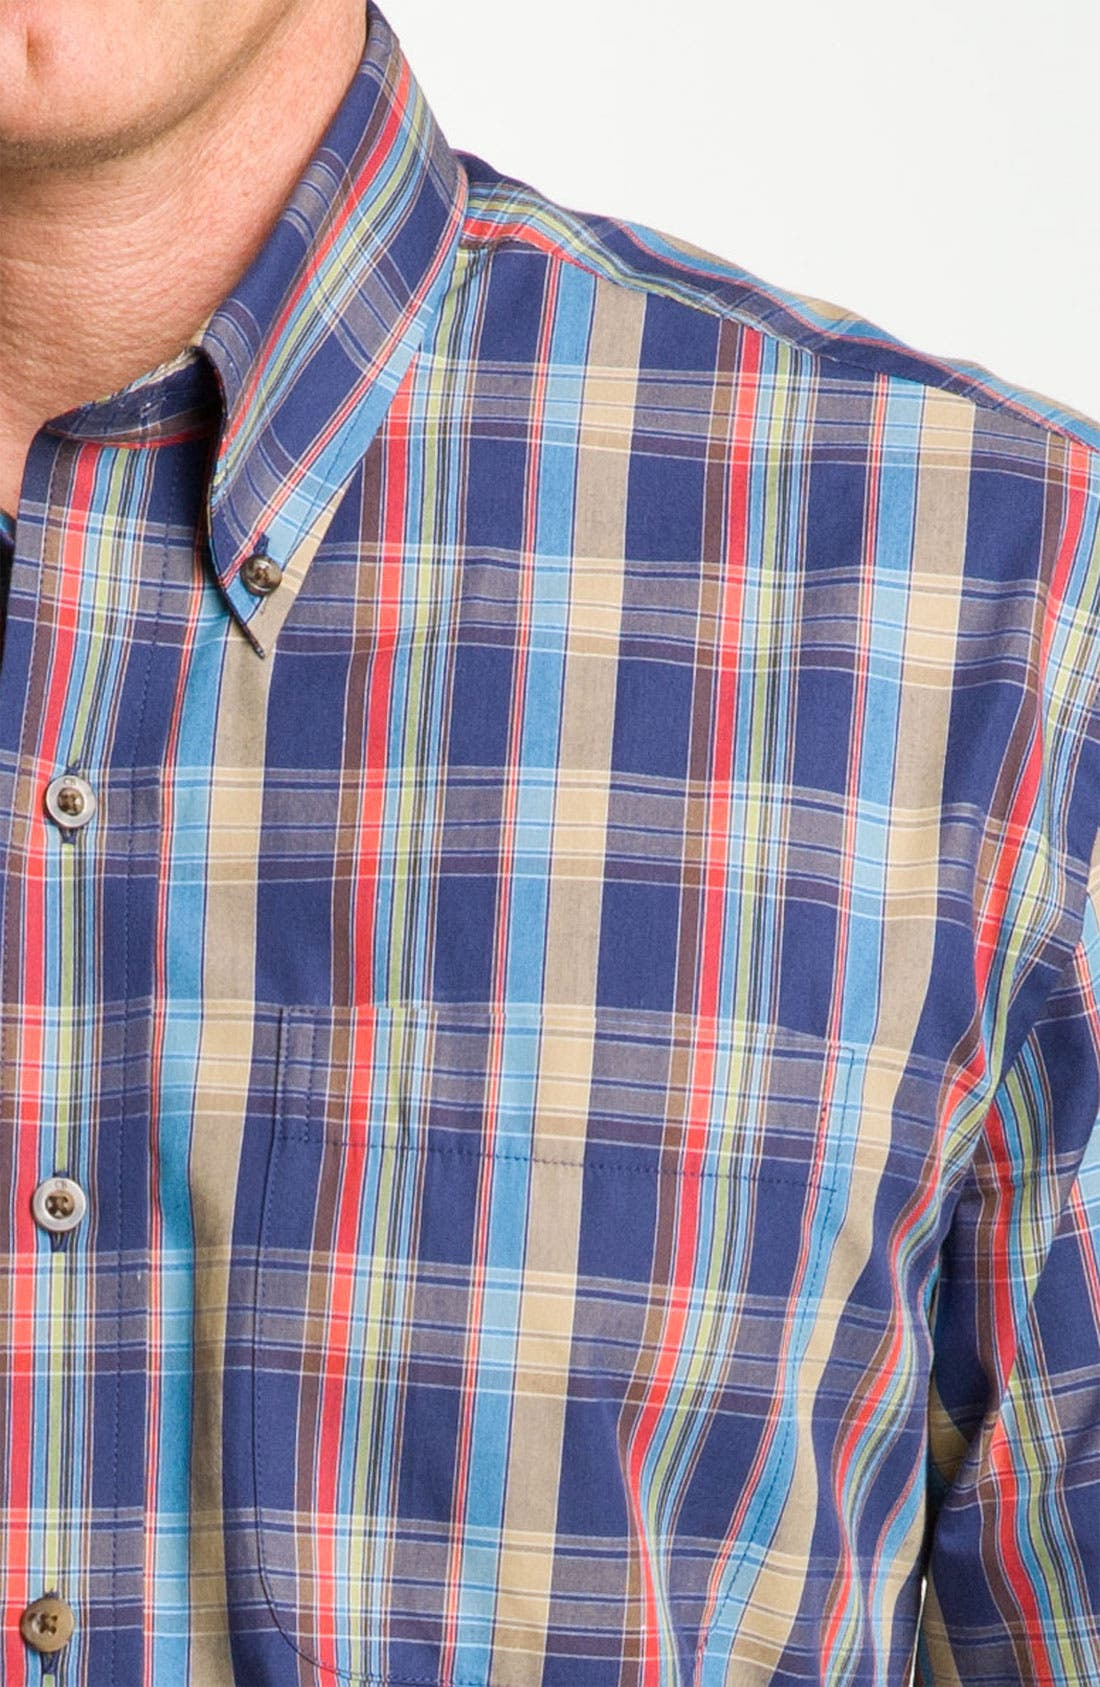 Alternate Image 3  - Cutter & Buck 'Palouse' Plaid Sport Shirt (Big & Tall)